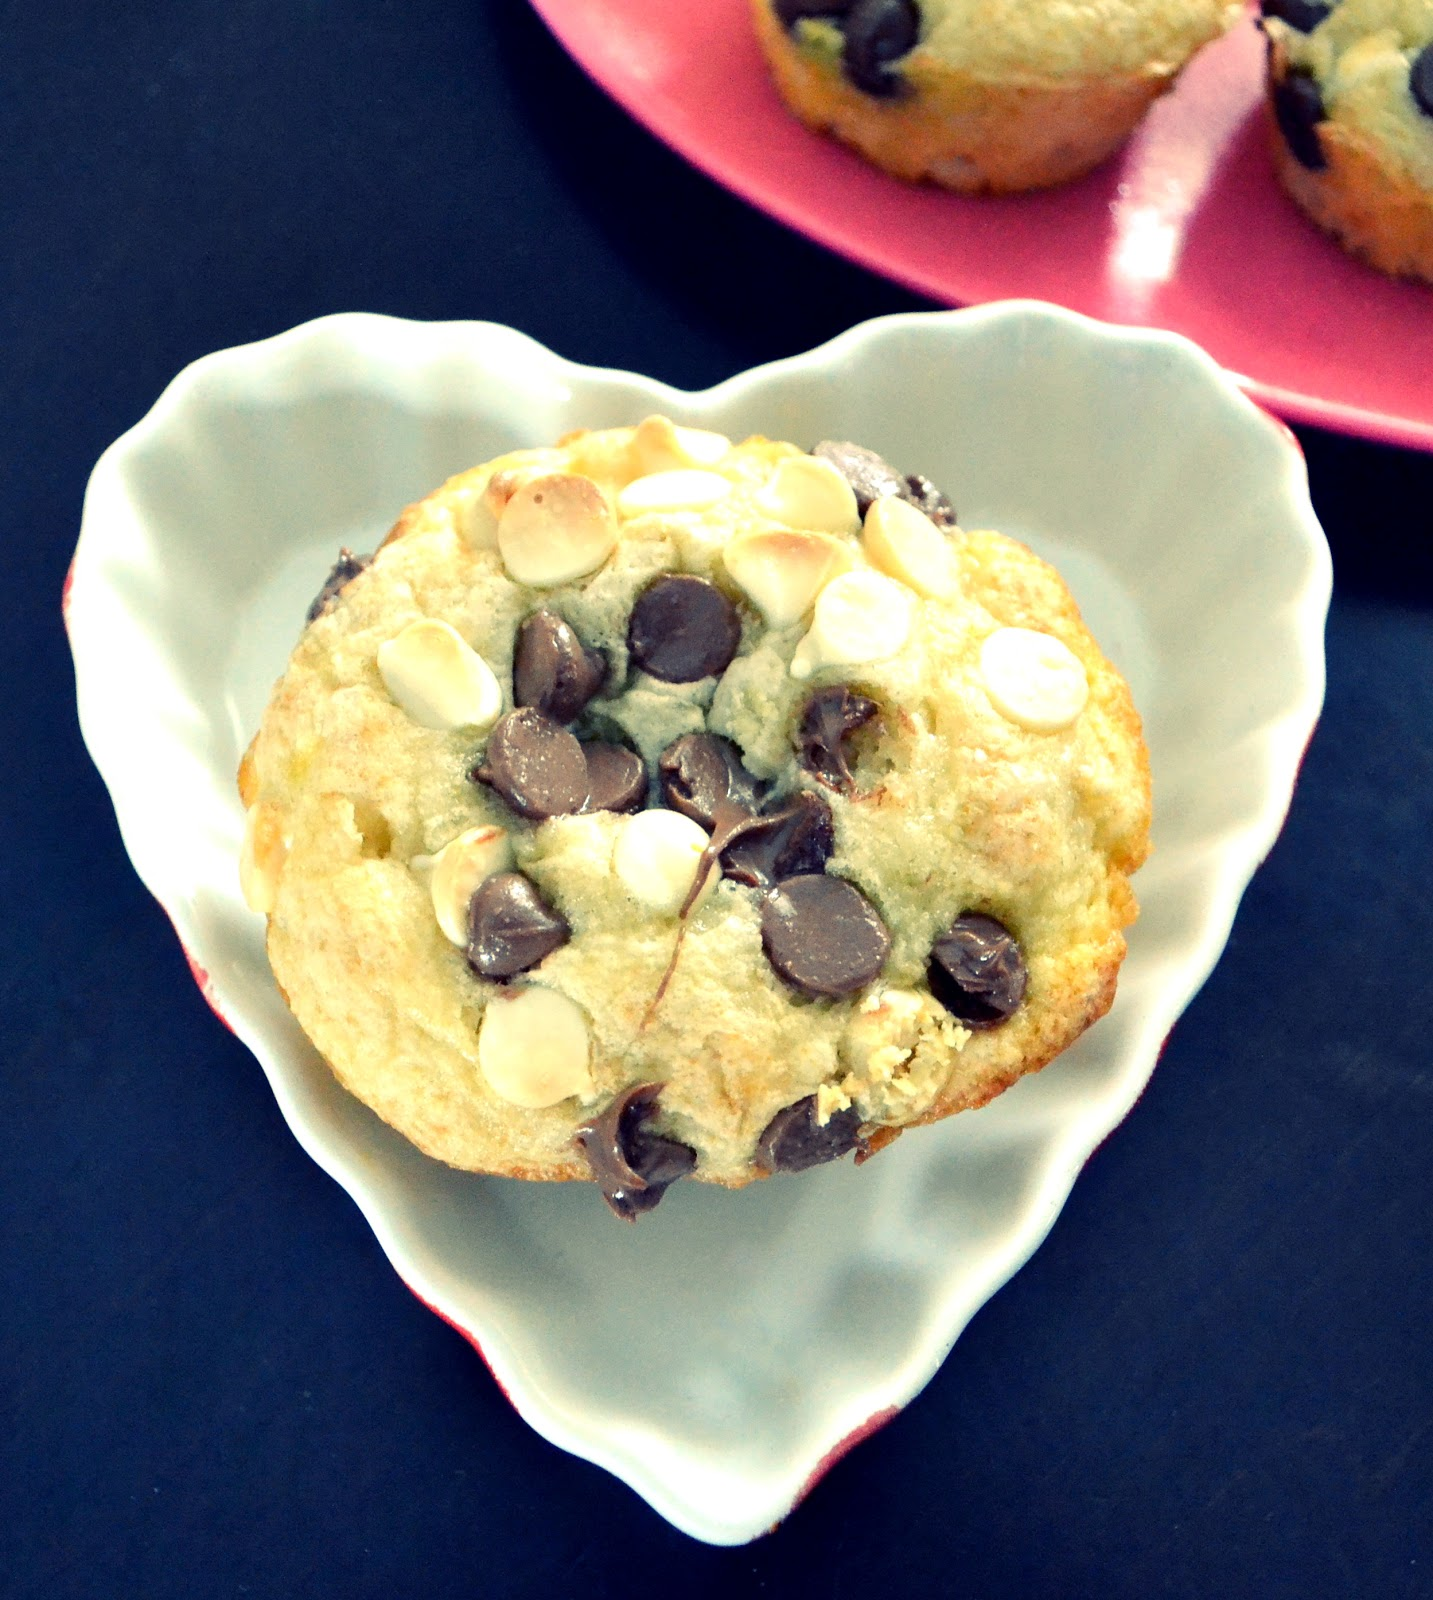 Using Cake Mix To Make Muffins With Chocolate Chip